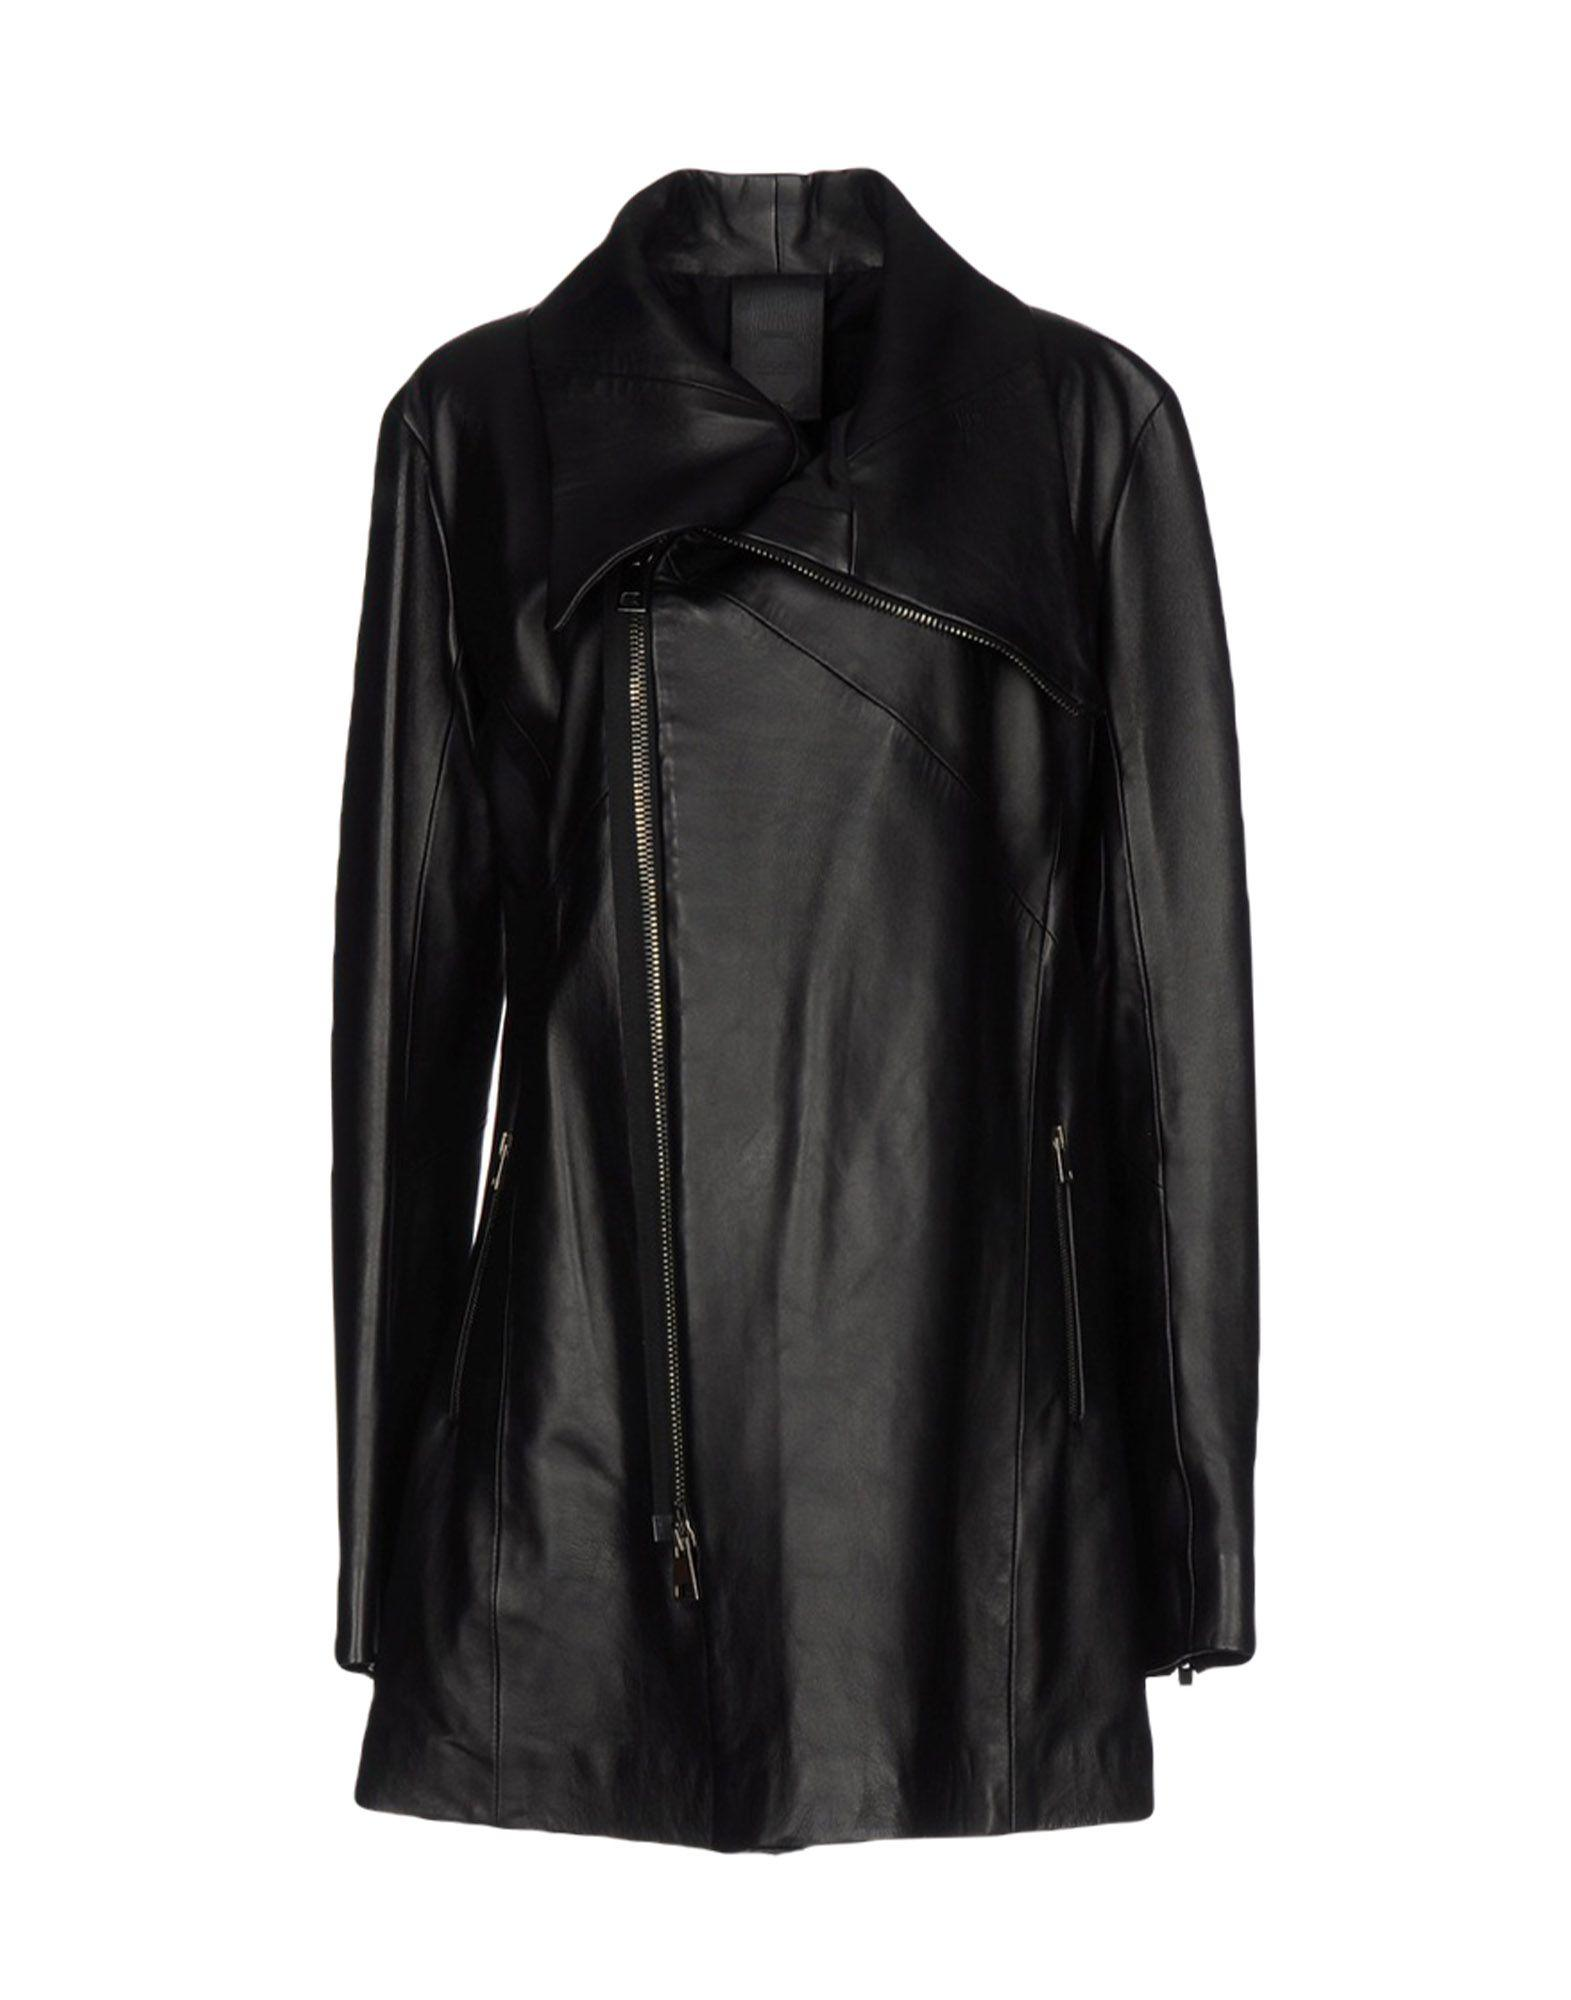 Giocasta Coats In Black